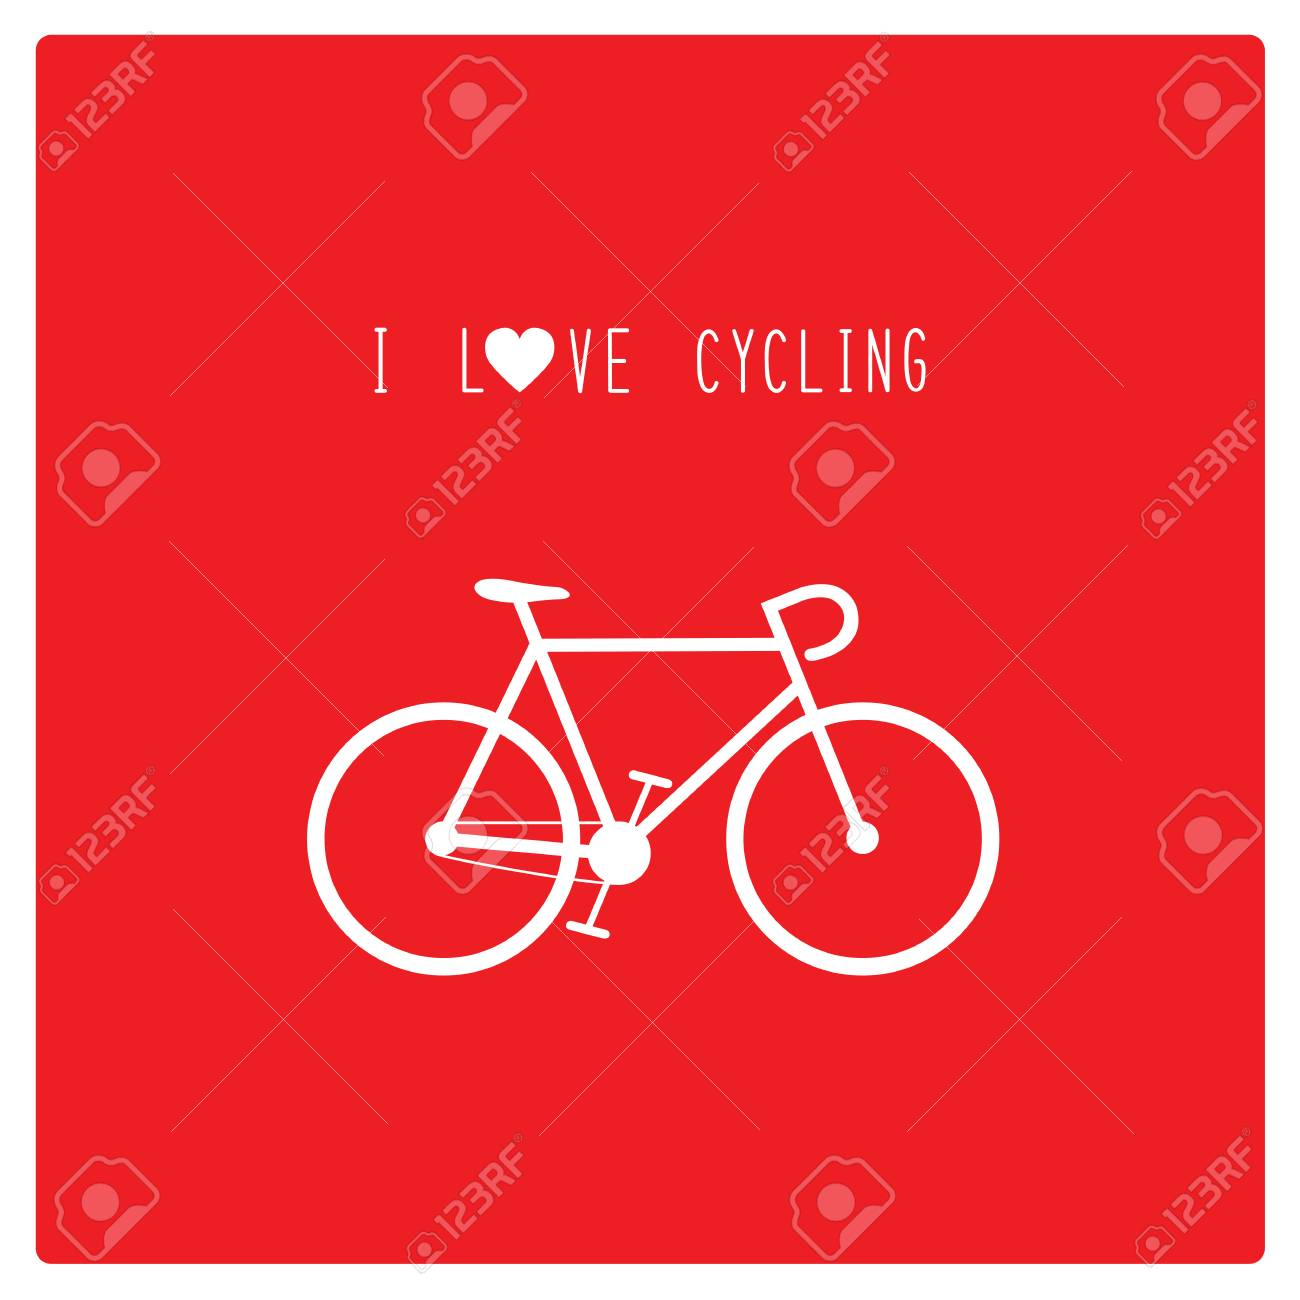 I Love Cycling Card For Decoration Royalty Free Cliparts Vectors